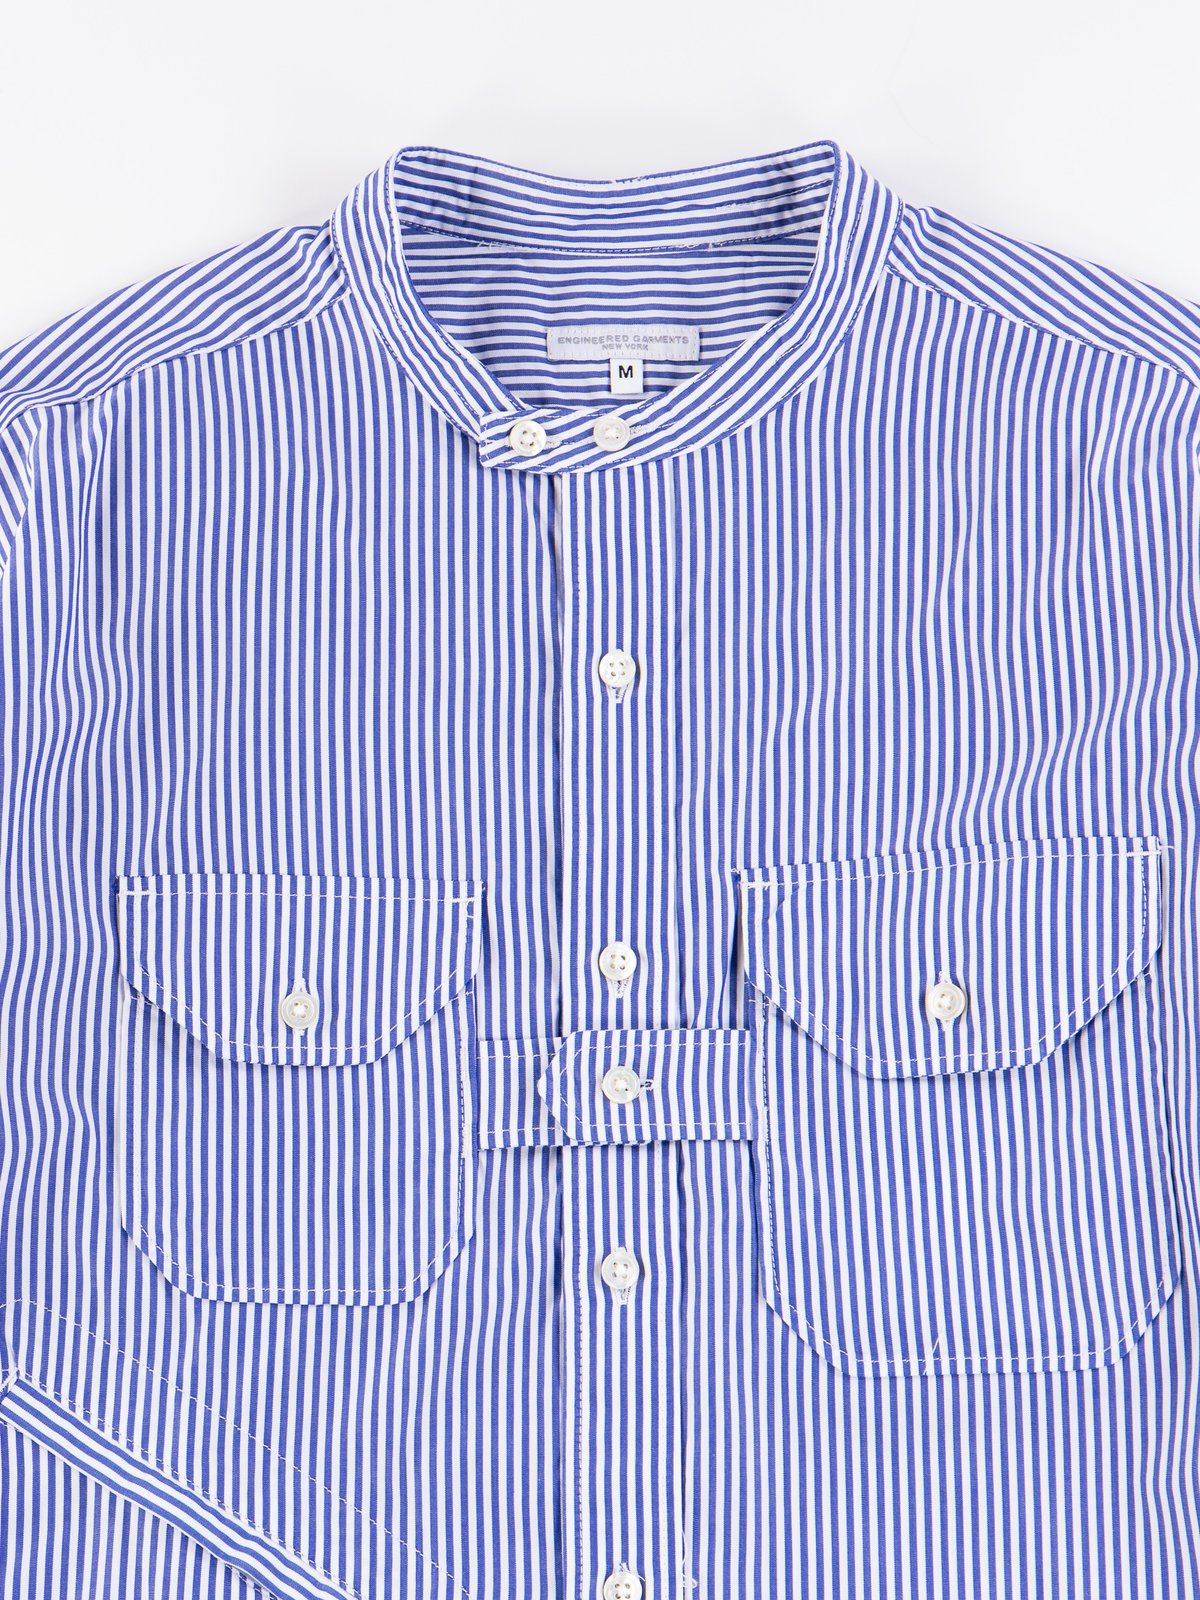 Blue/White Candy Stripe Broadcloth Banded Collar Shirt - Image 3